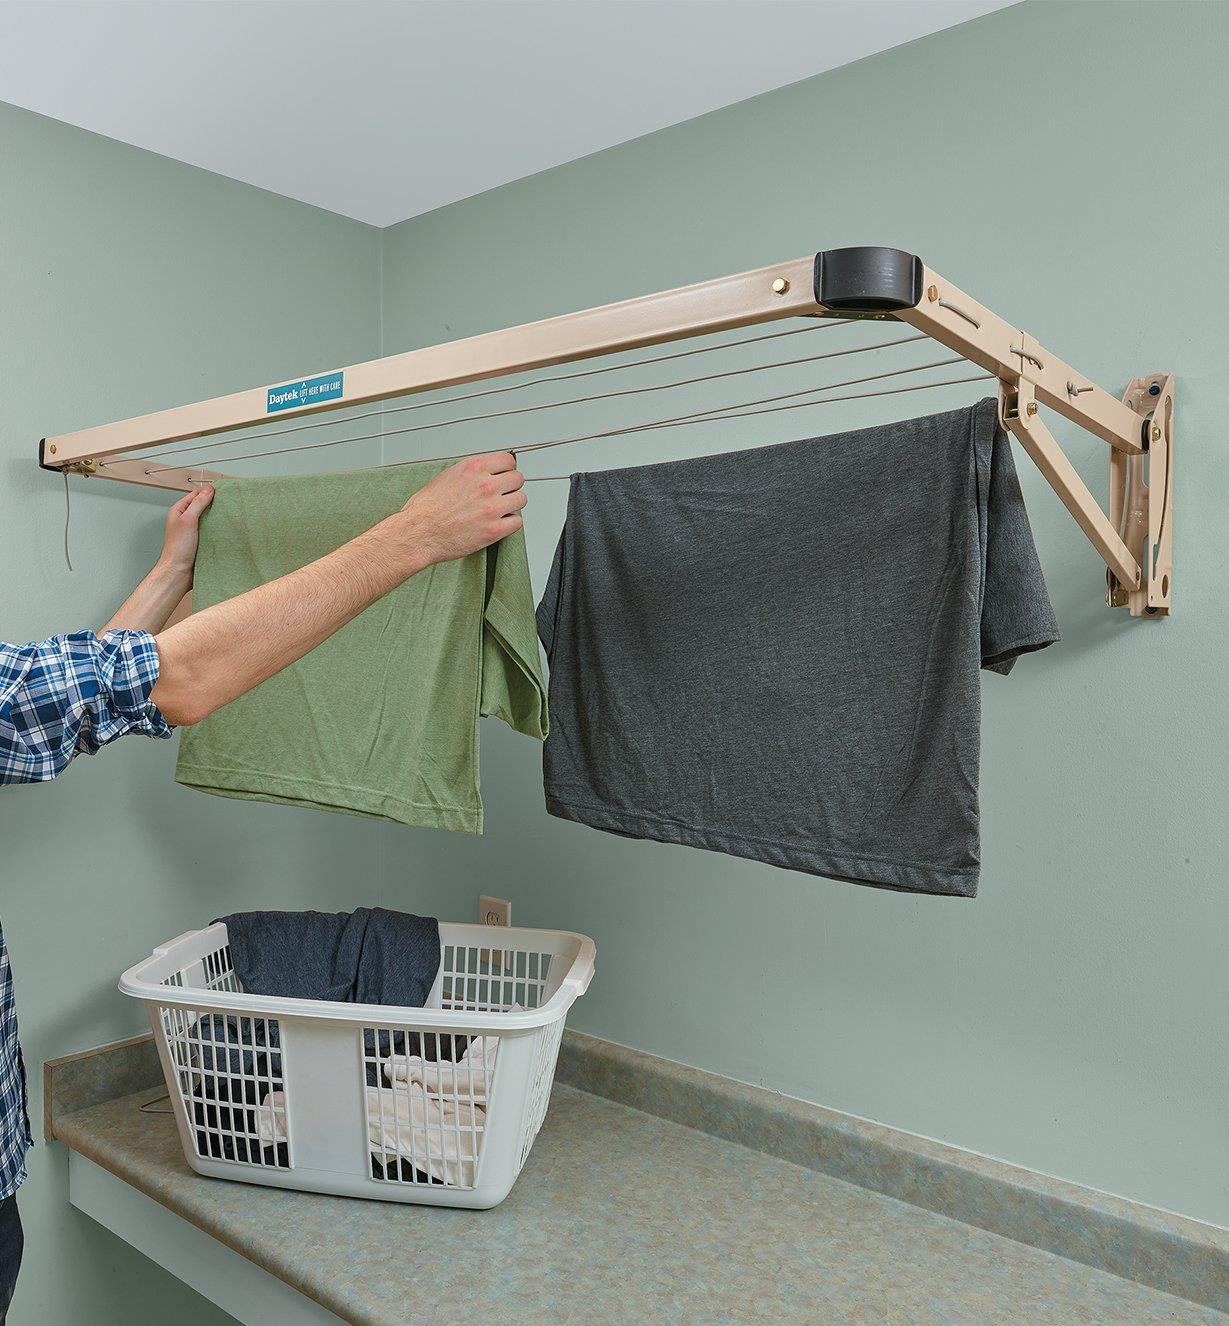 01S1713 - Folding Drying Rack